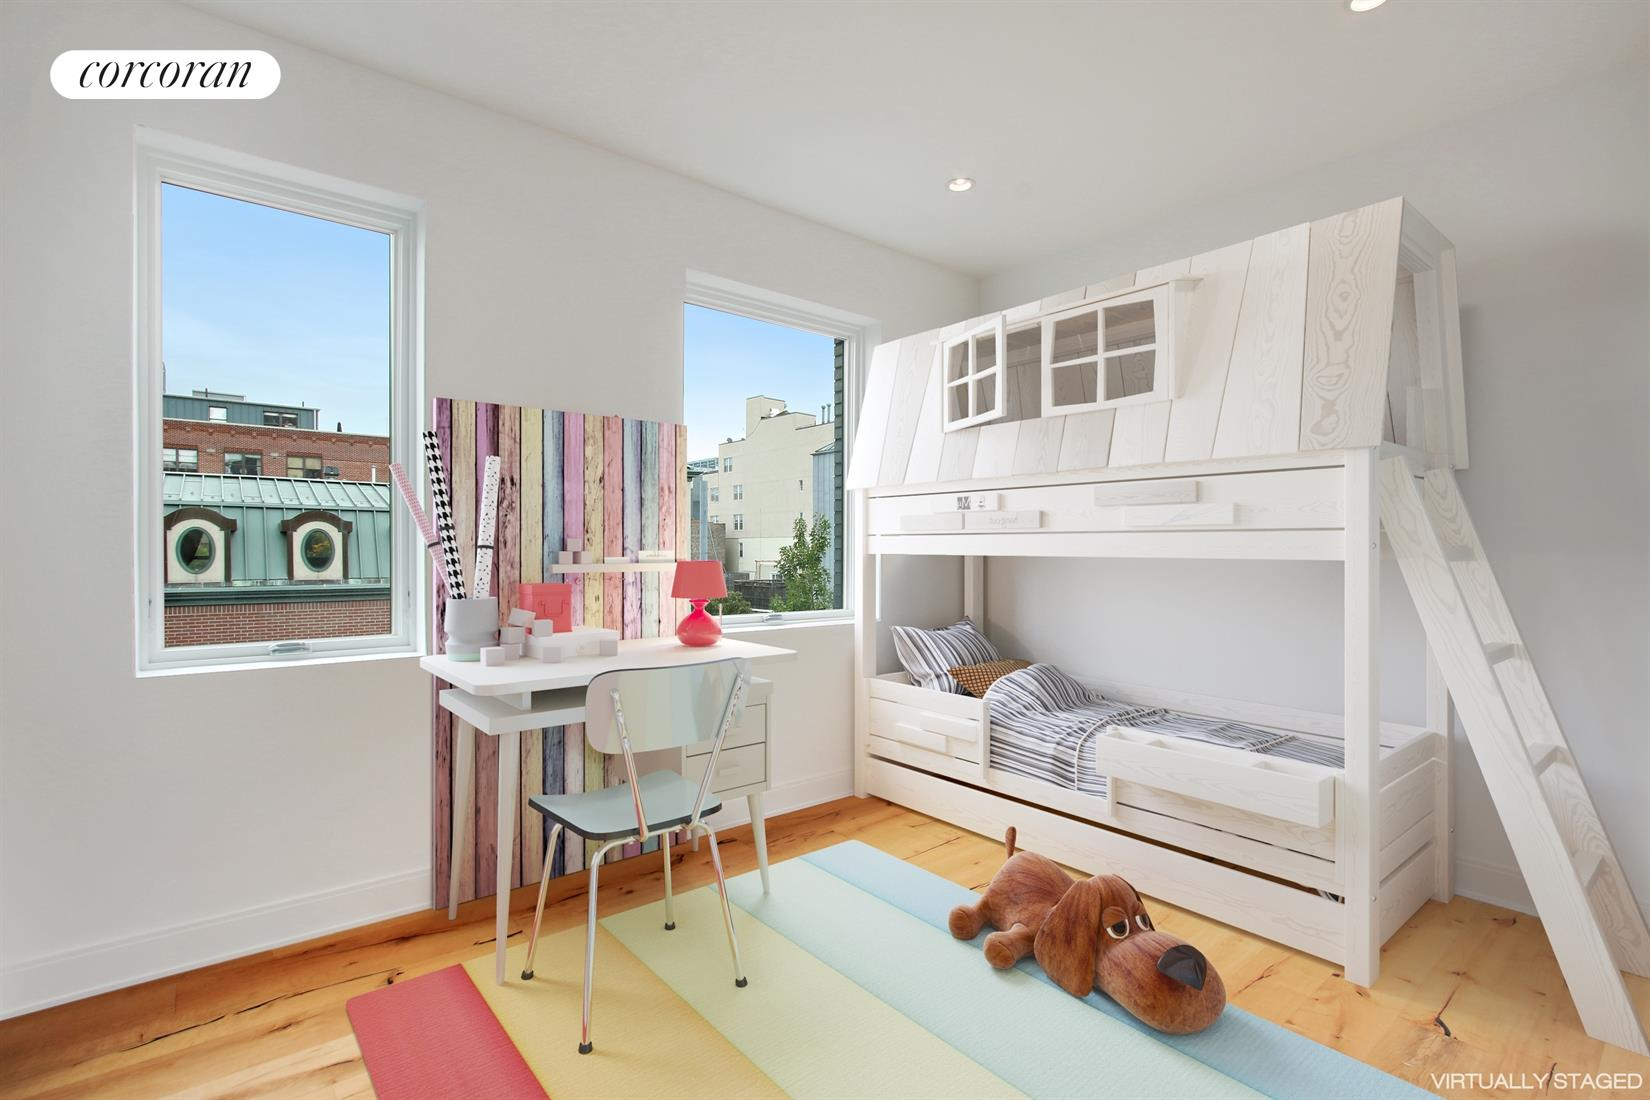 Corcoran, 43 Dean Street, Boerum Hill Real Estate, Brooklyn For Sale ...